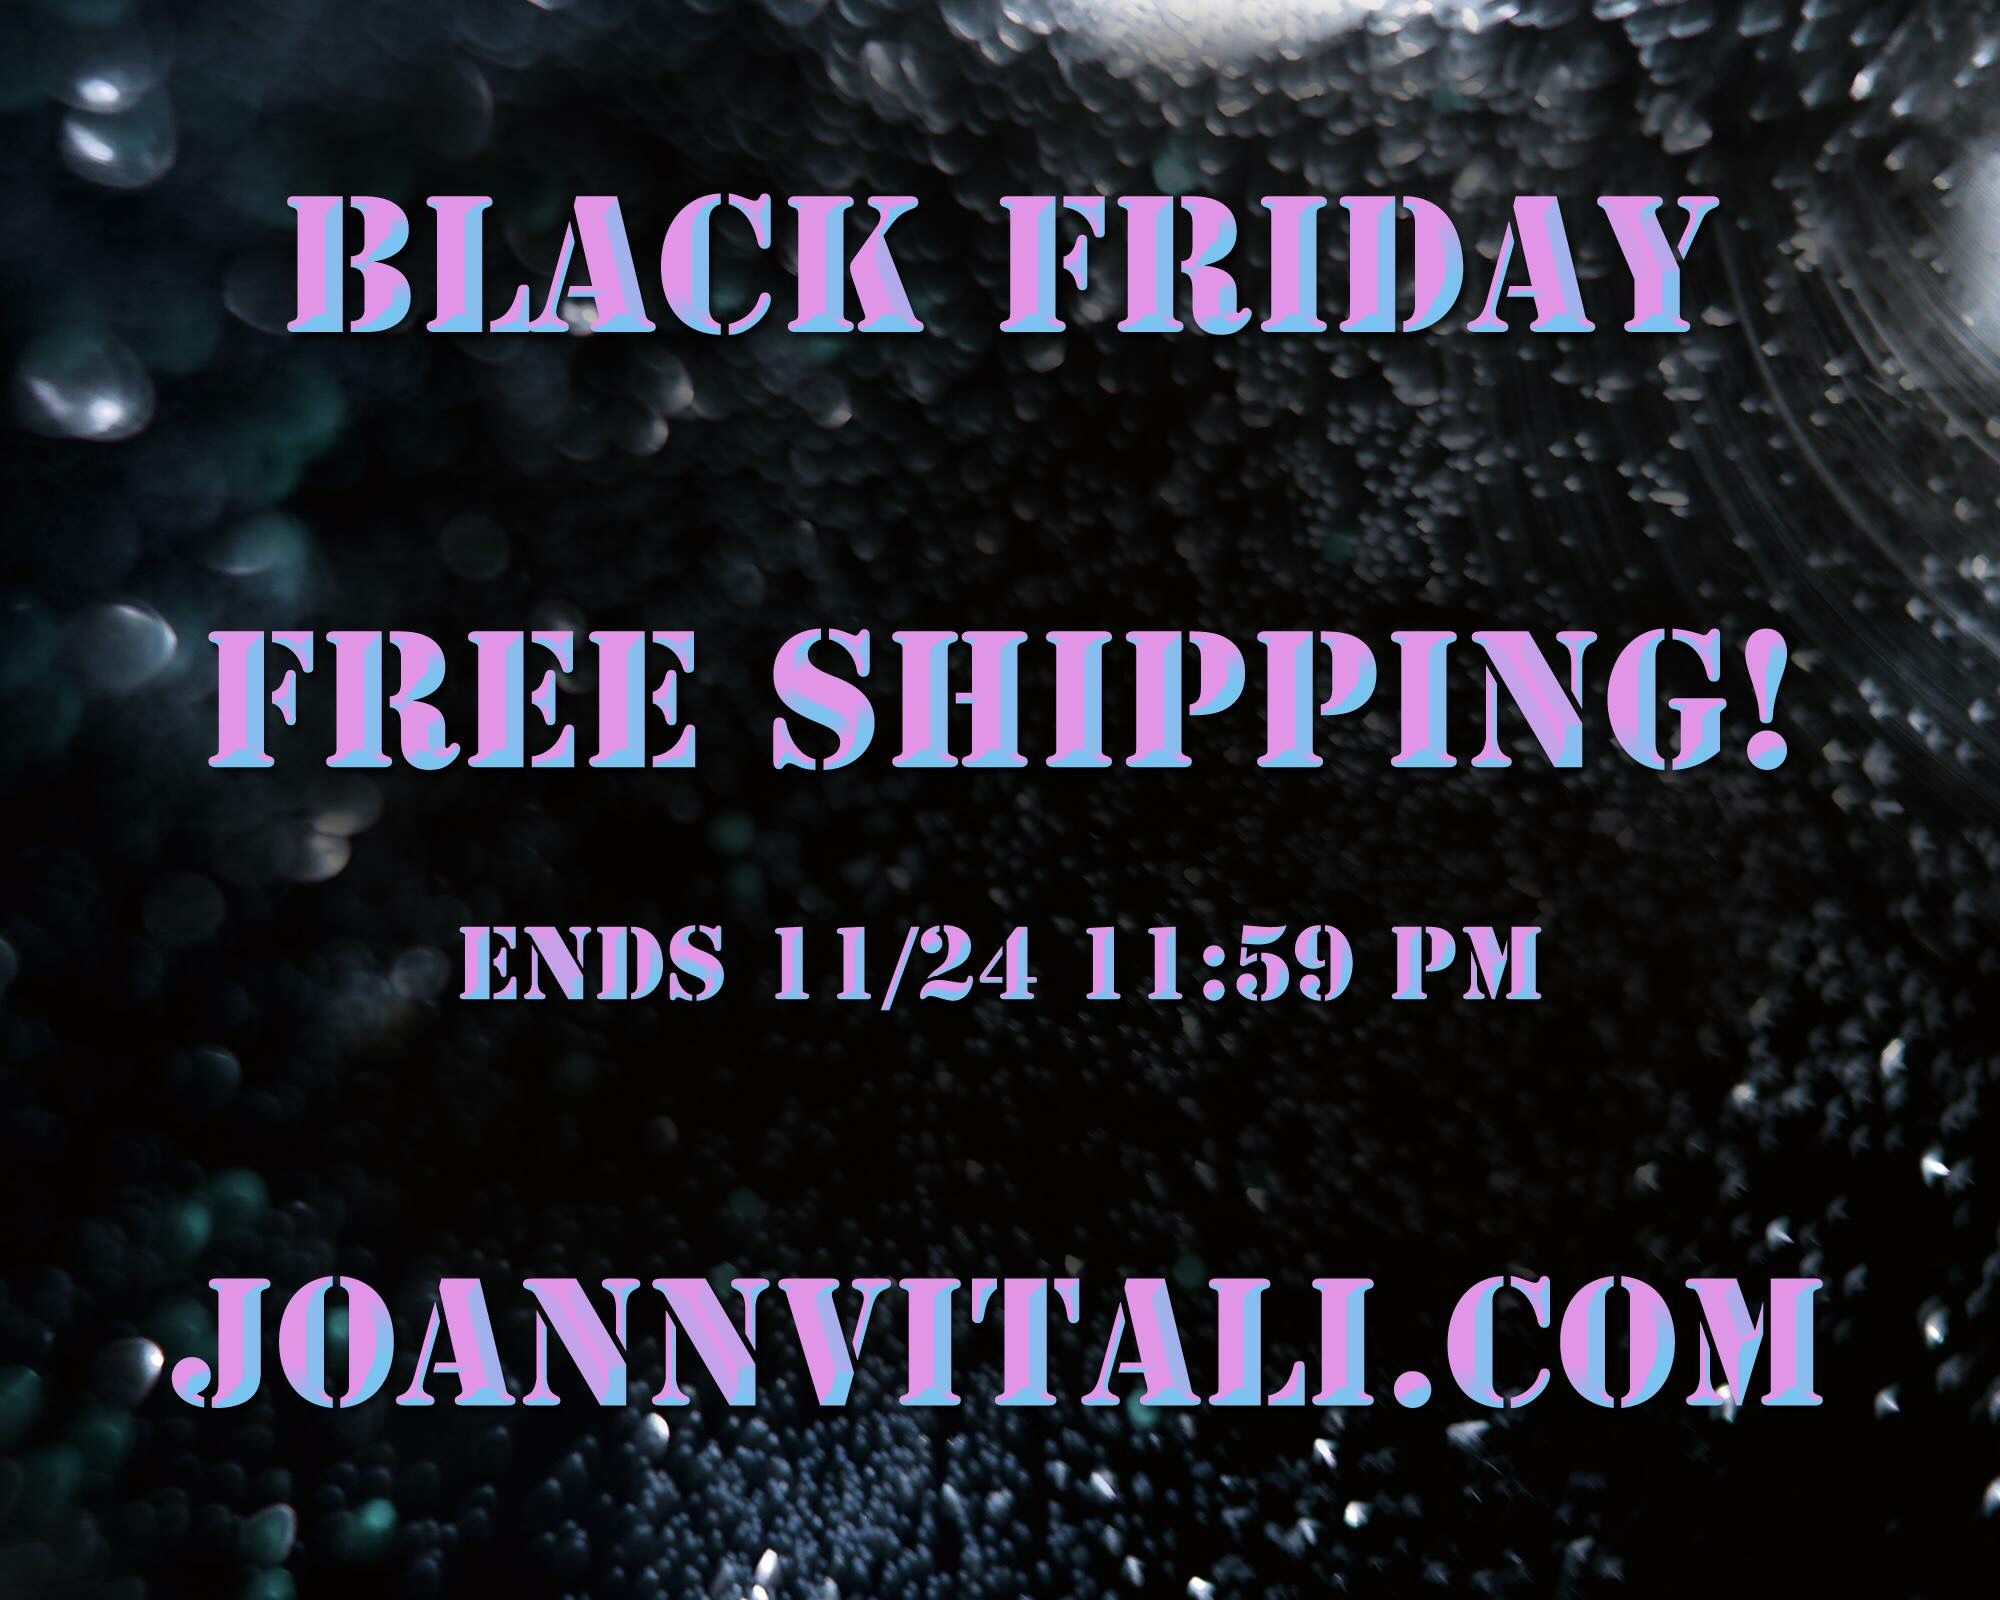 FREE SHIPPING today only! BLACK FRIDAY. All Boston and New